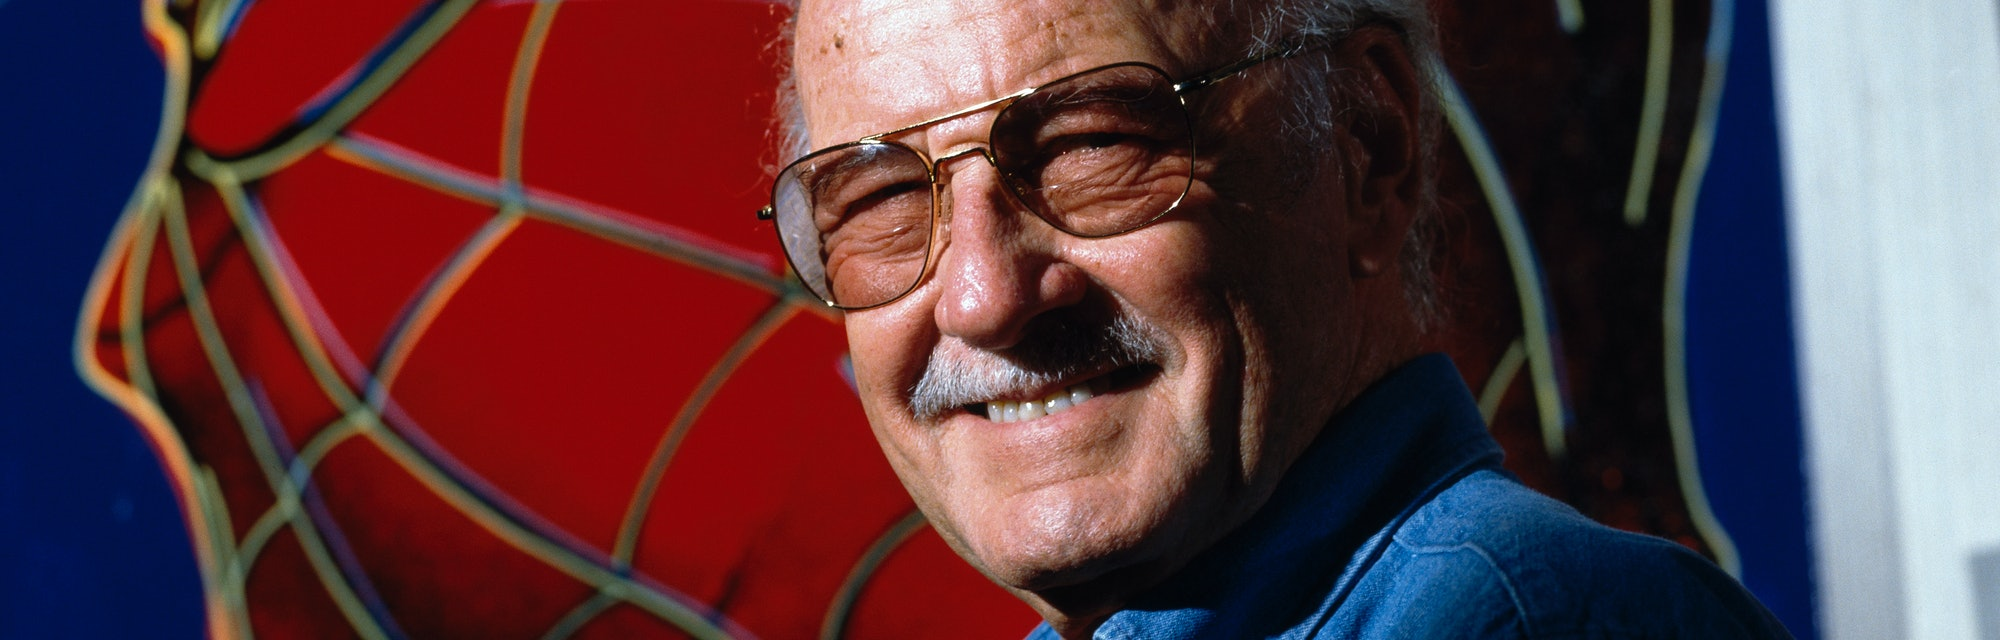 Stan Lee is an American comic book writer, editor, publisher, media producer, television host, actor...